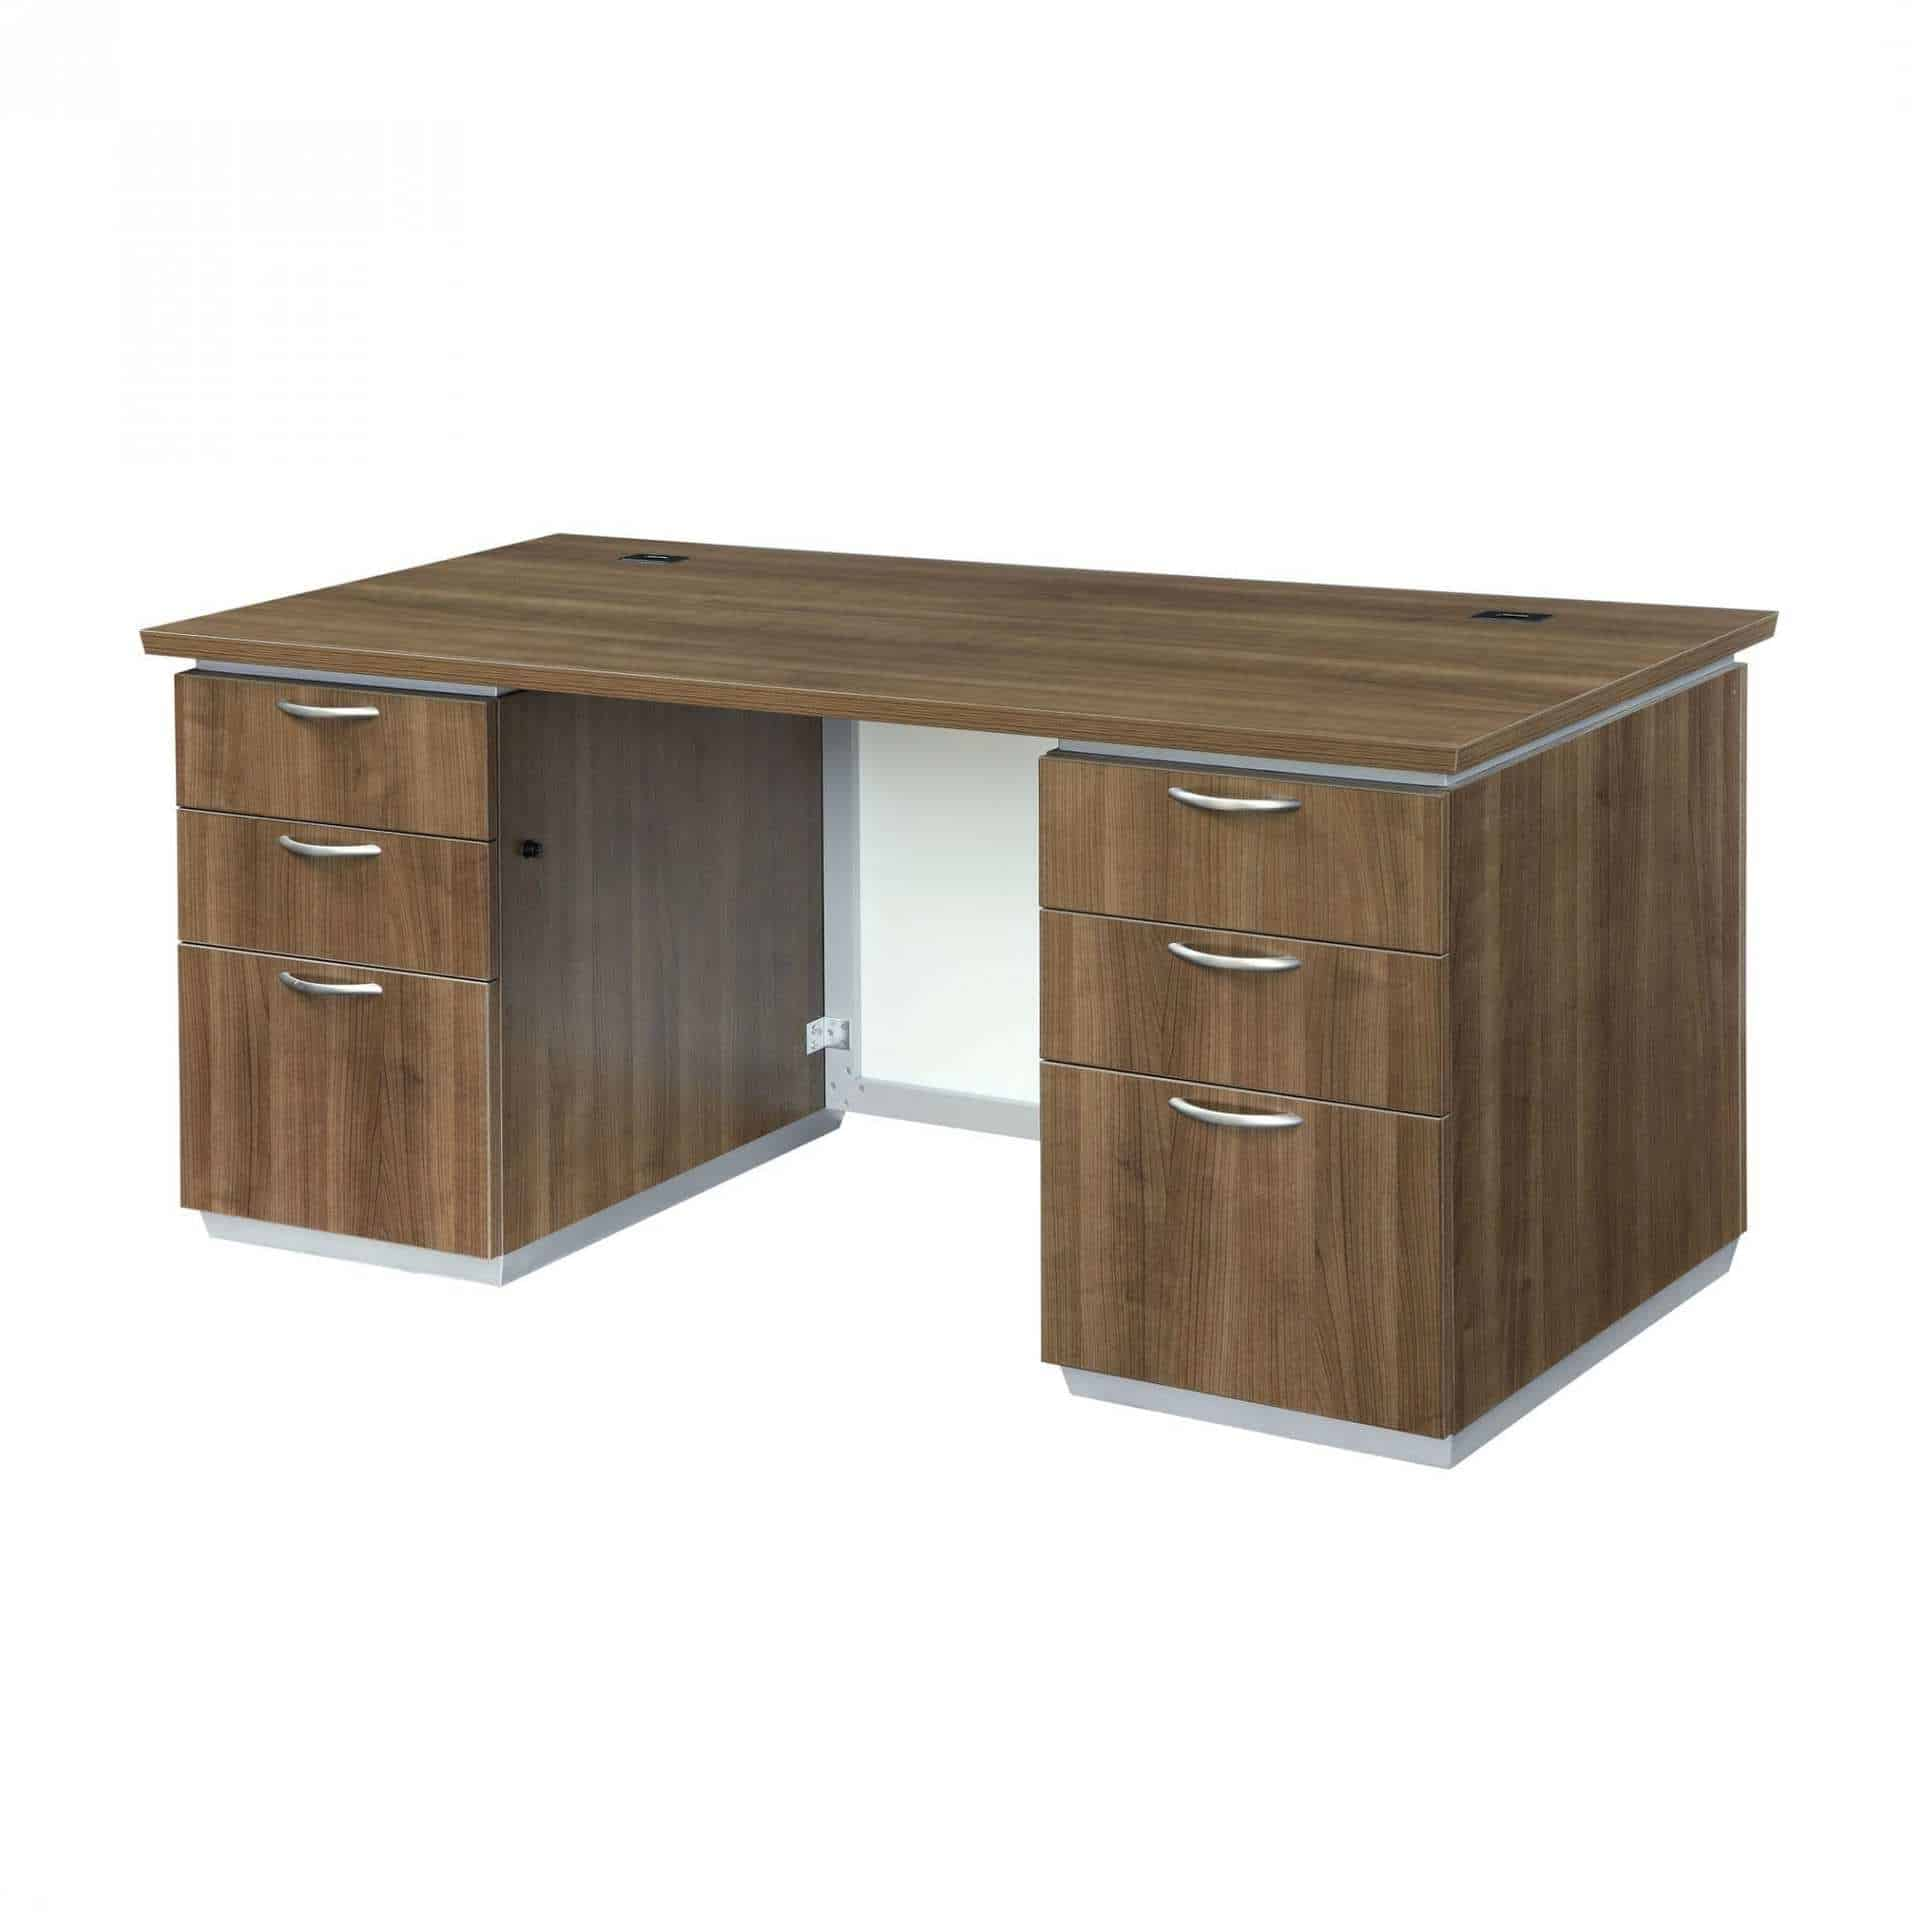 EXECUTIVE DESK WITH WHITE GLASS MODESTY PANEL - Used Office ...